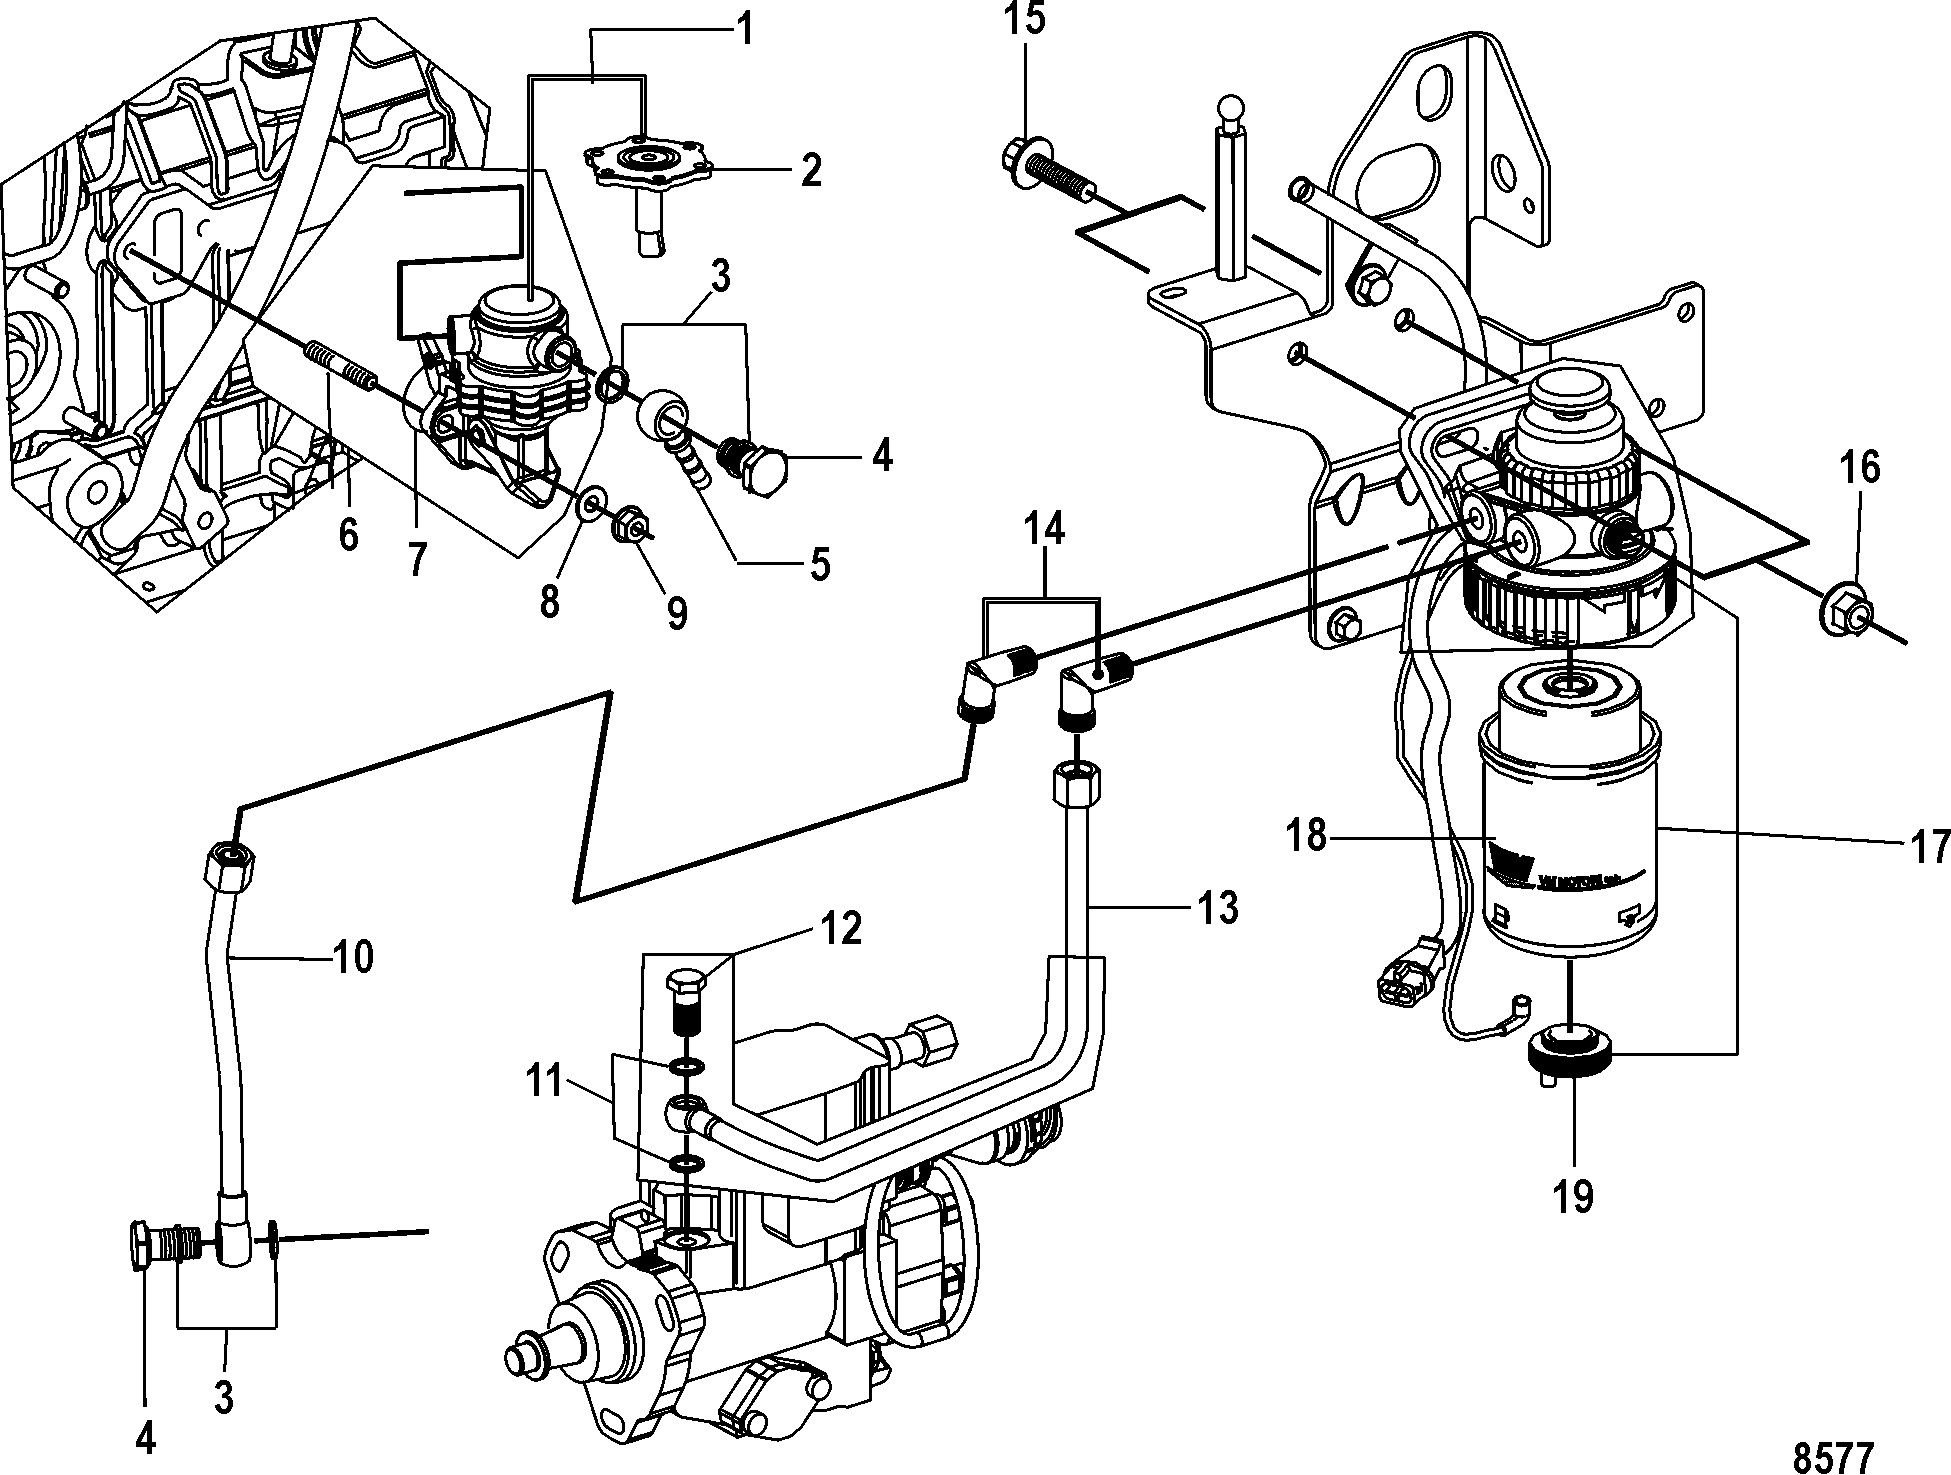 Mercruiser 170 Engine Diagram КатаРог запчастей Mercruiser остаРьные Cmd 2 8 Es 170 Thru Of Mercruiser 170 Engine Diagram